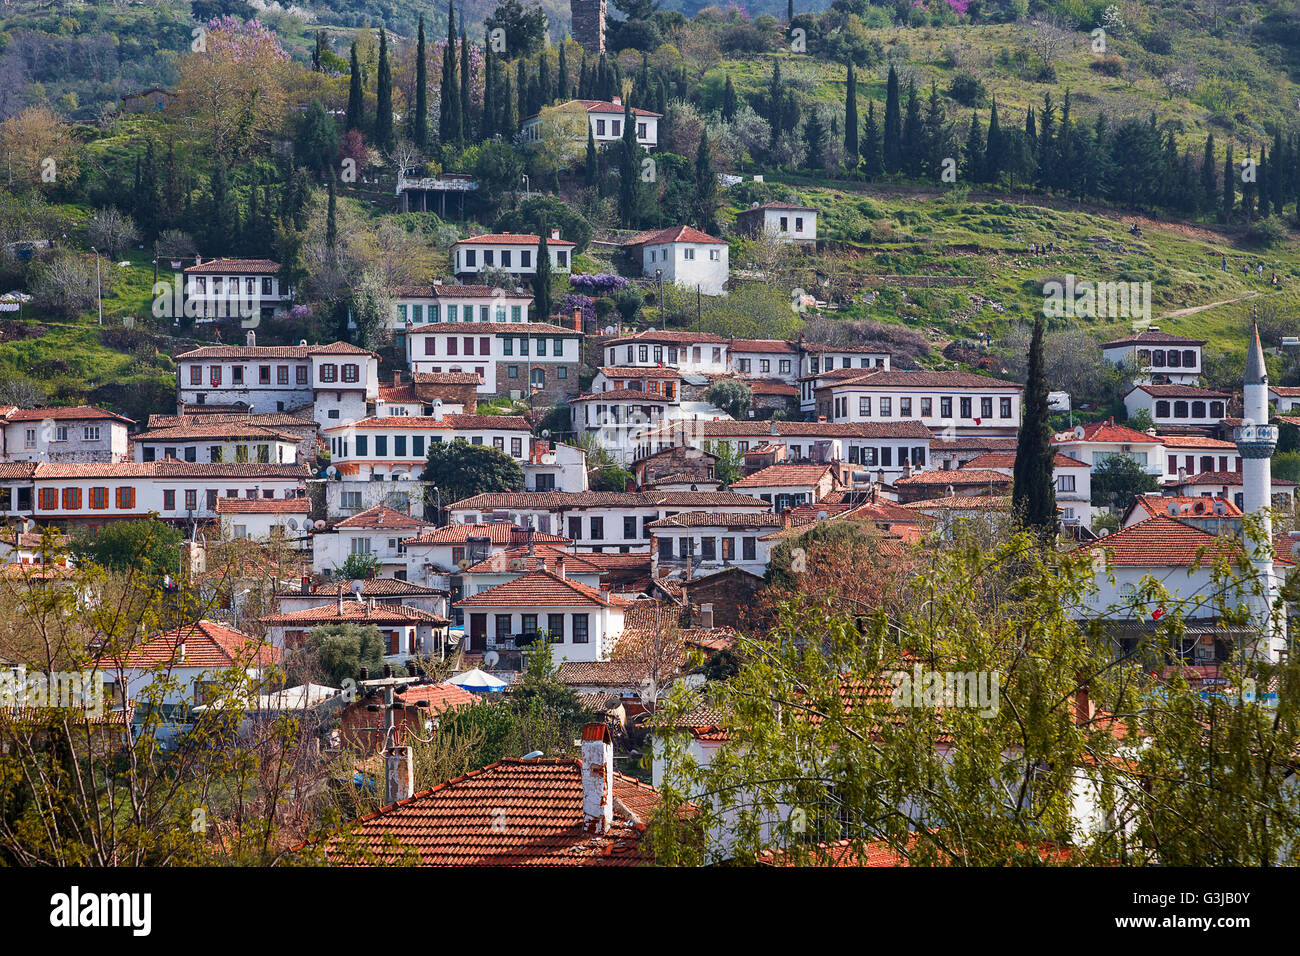 Old village houses in Sirince, Turkey - Stock Image